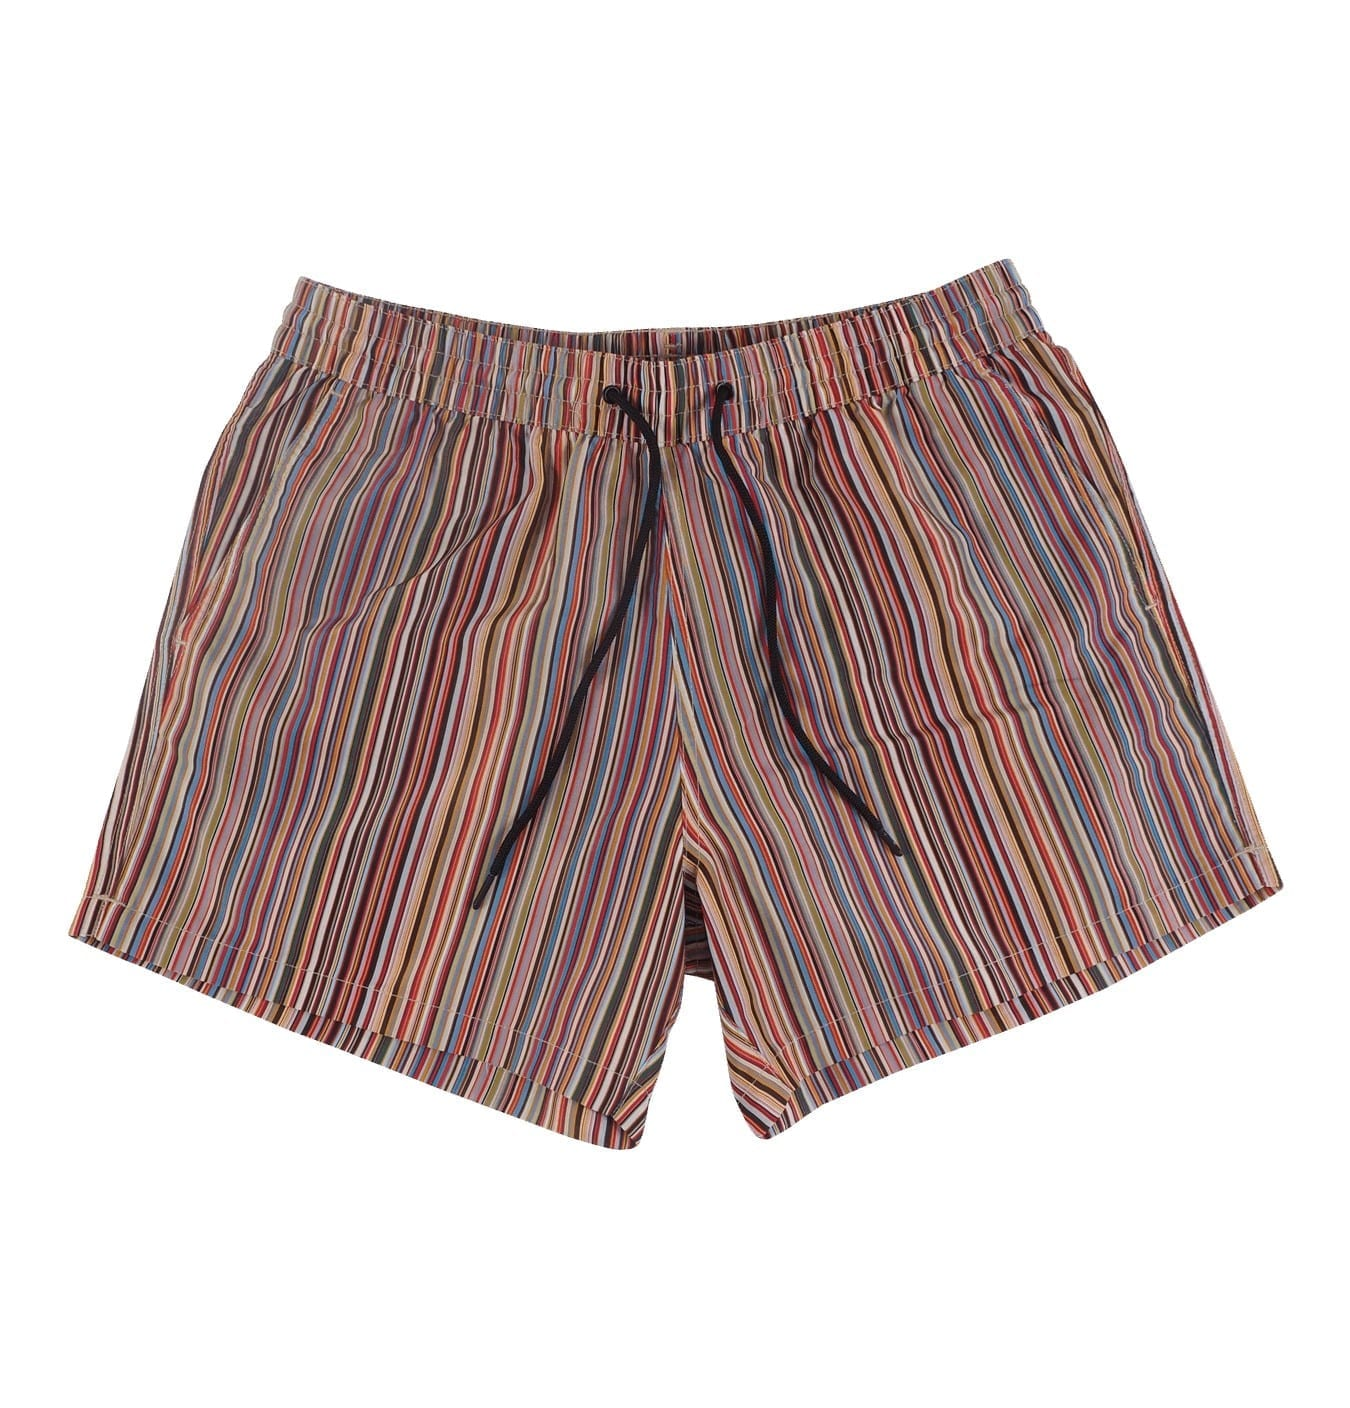 Image of   Classic Striped Swim Shorts